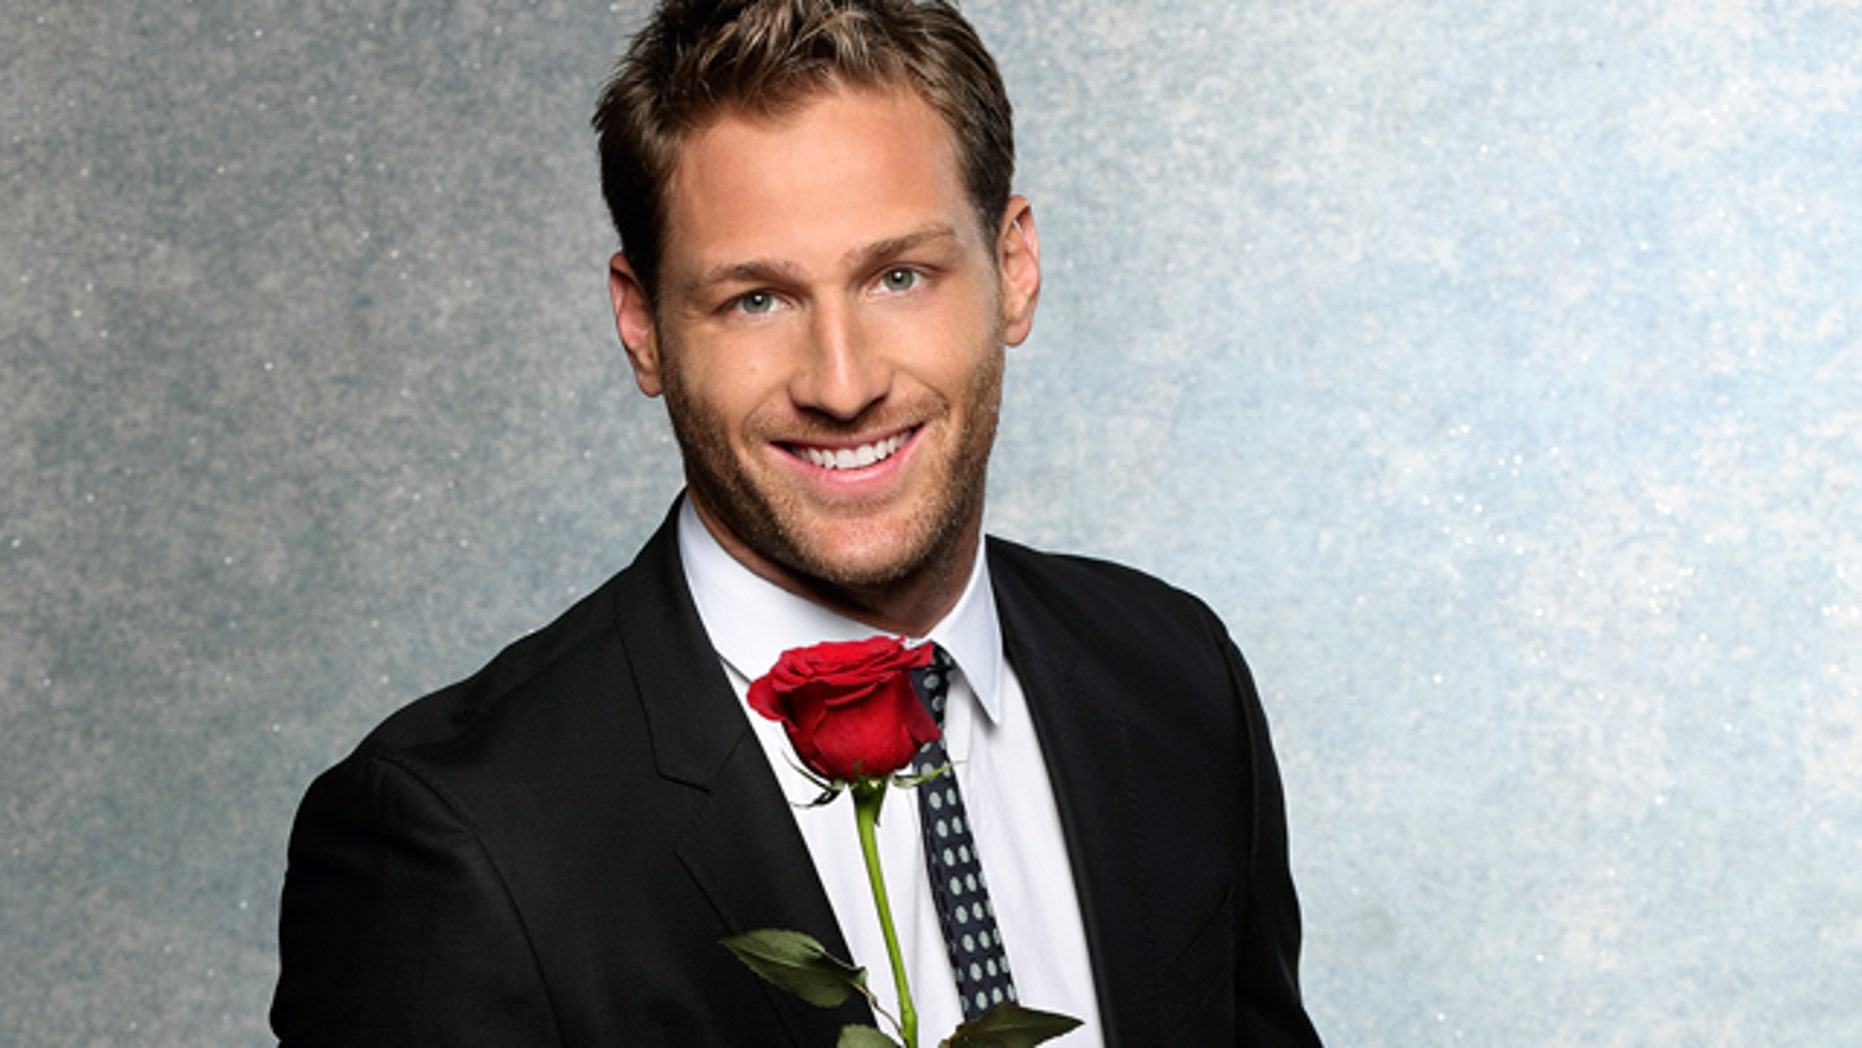 Image result for juan pablo galavis bachelor